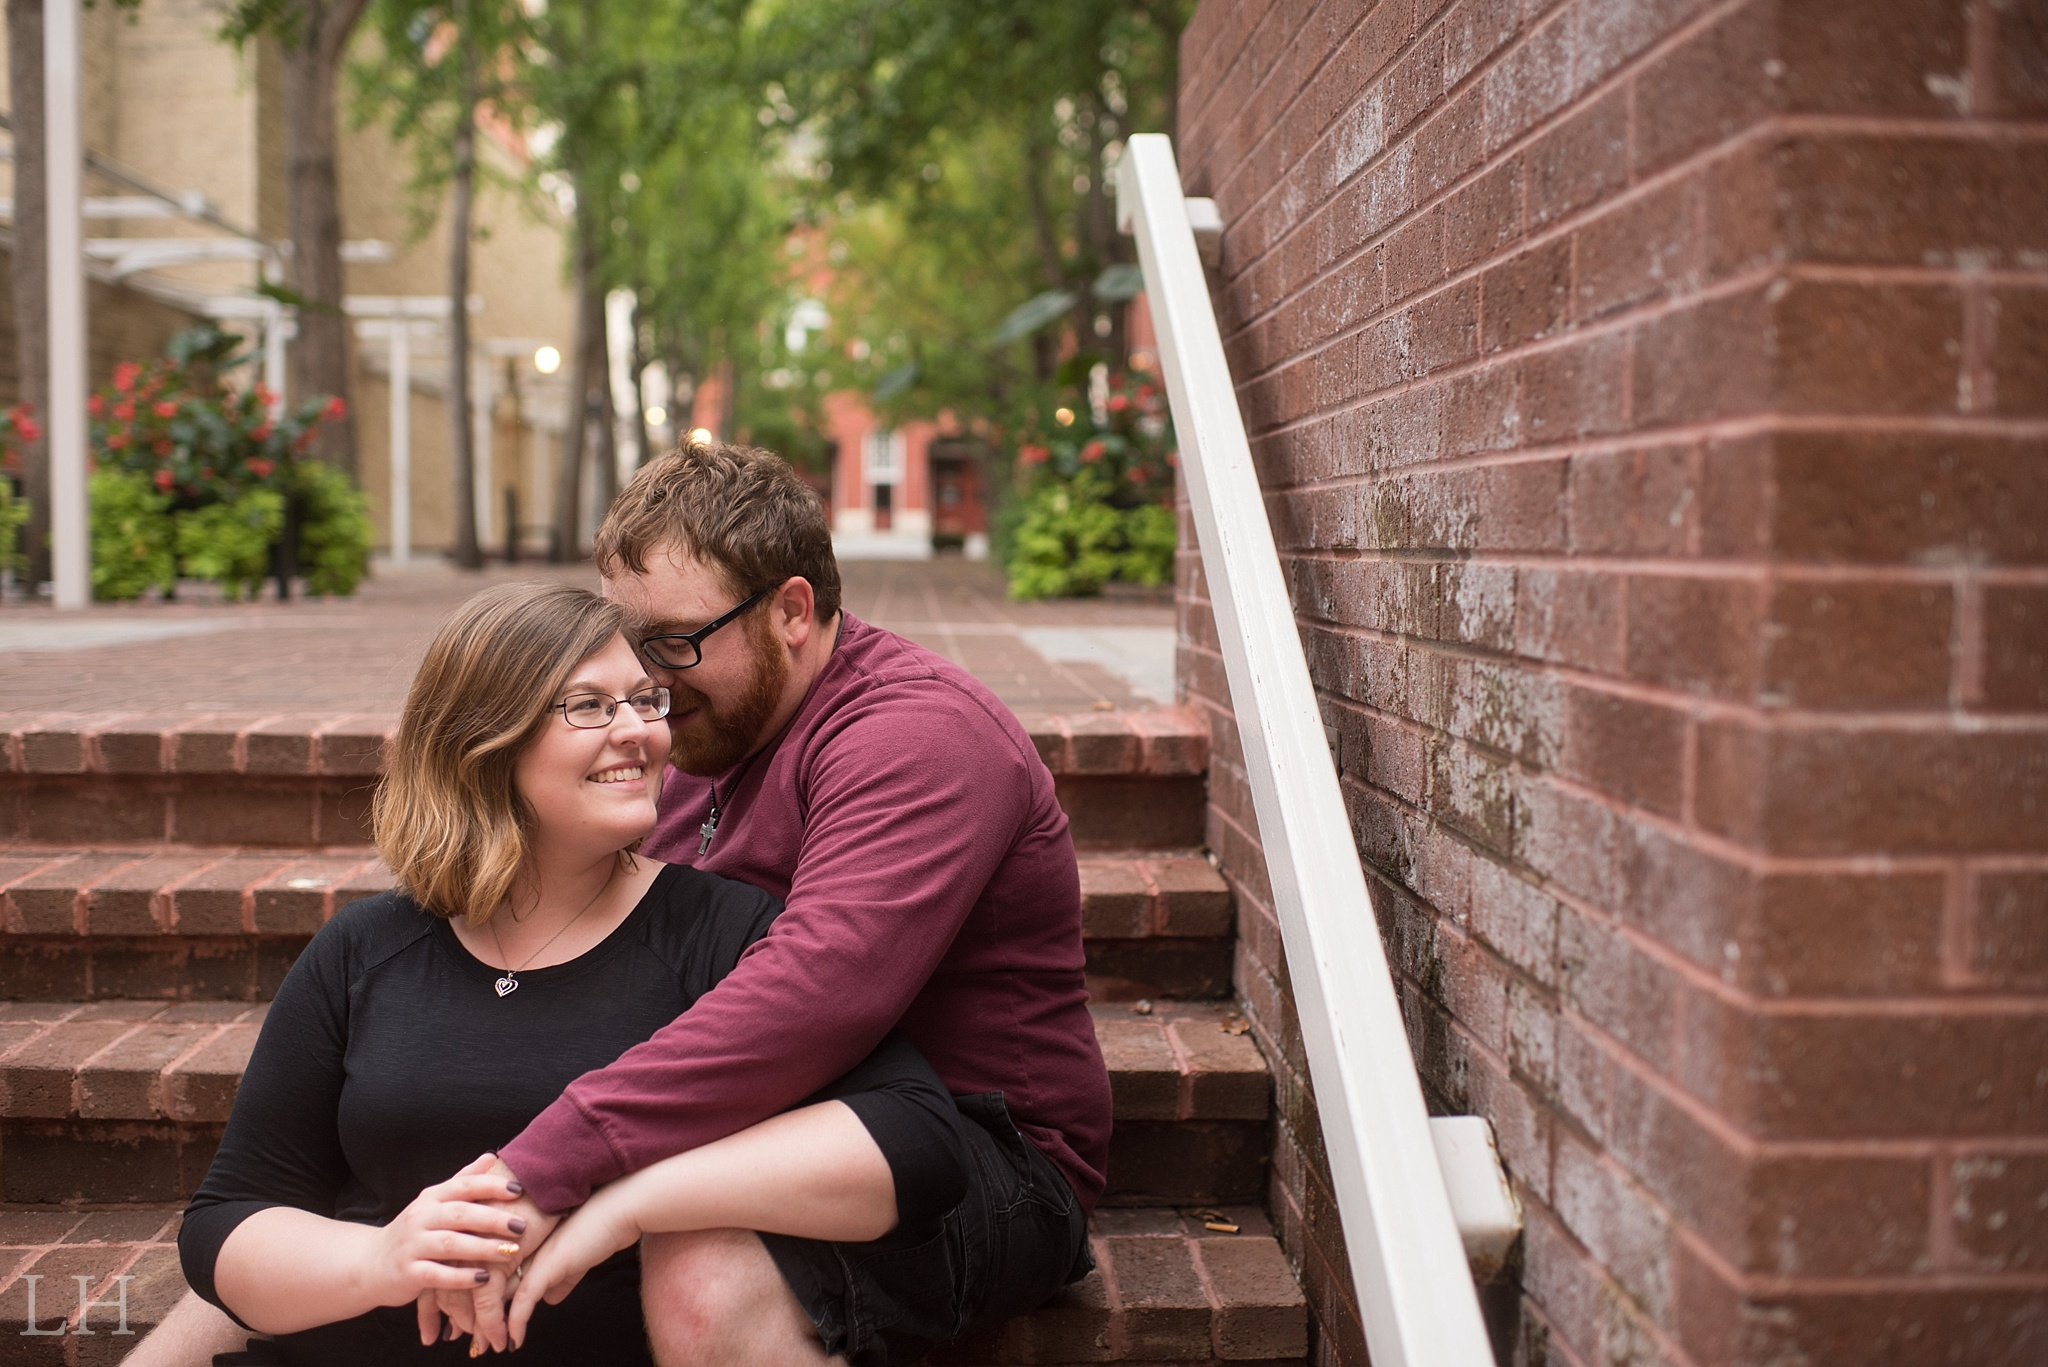 EmilyDustinEngaged_153_Blog.jpg